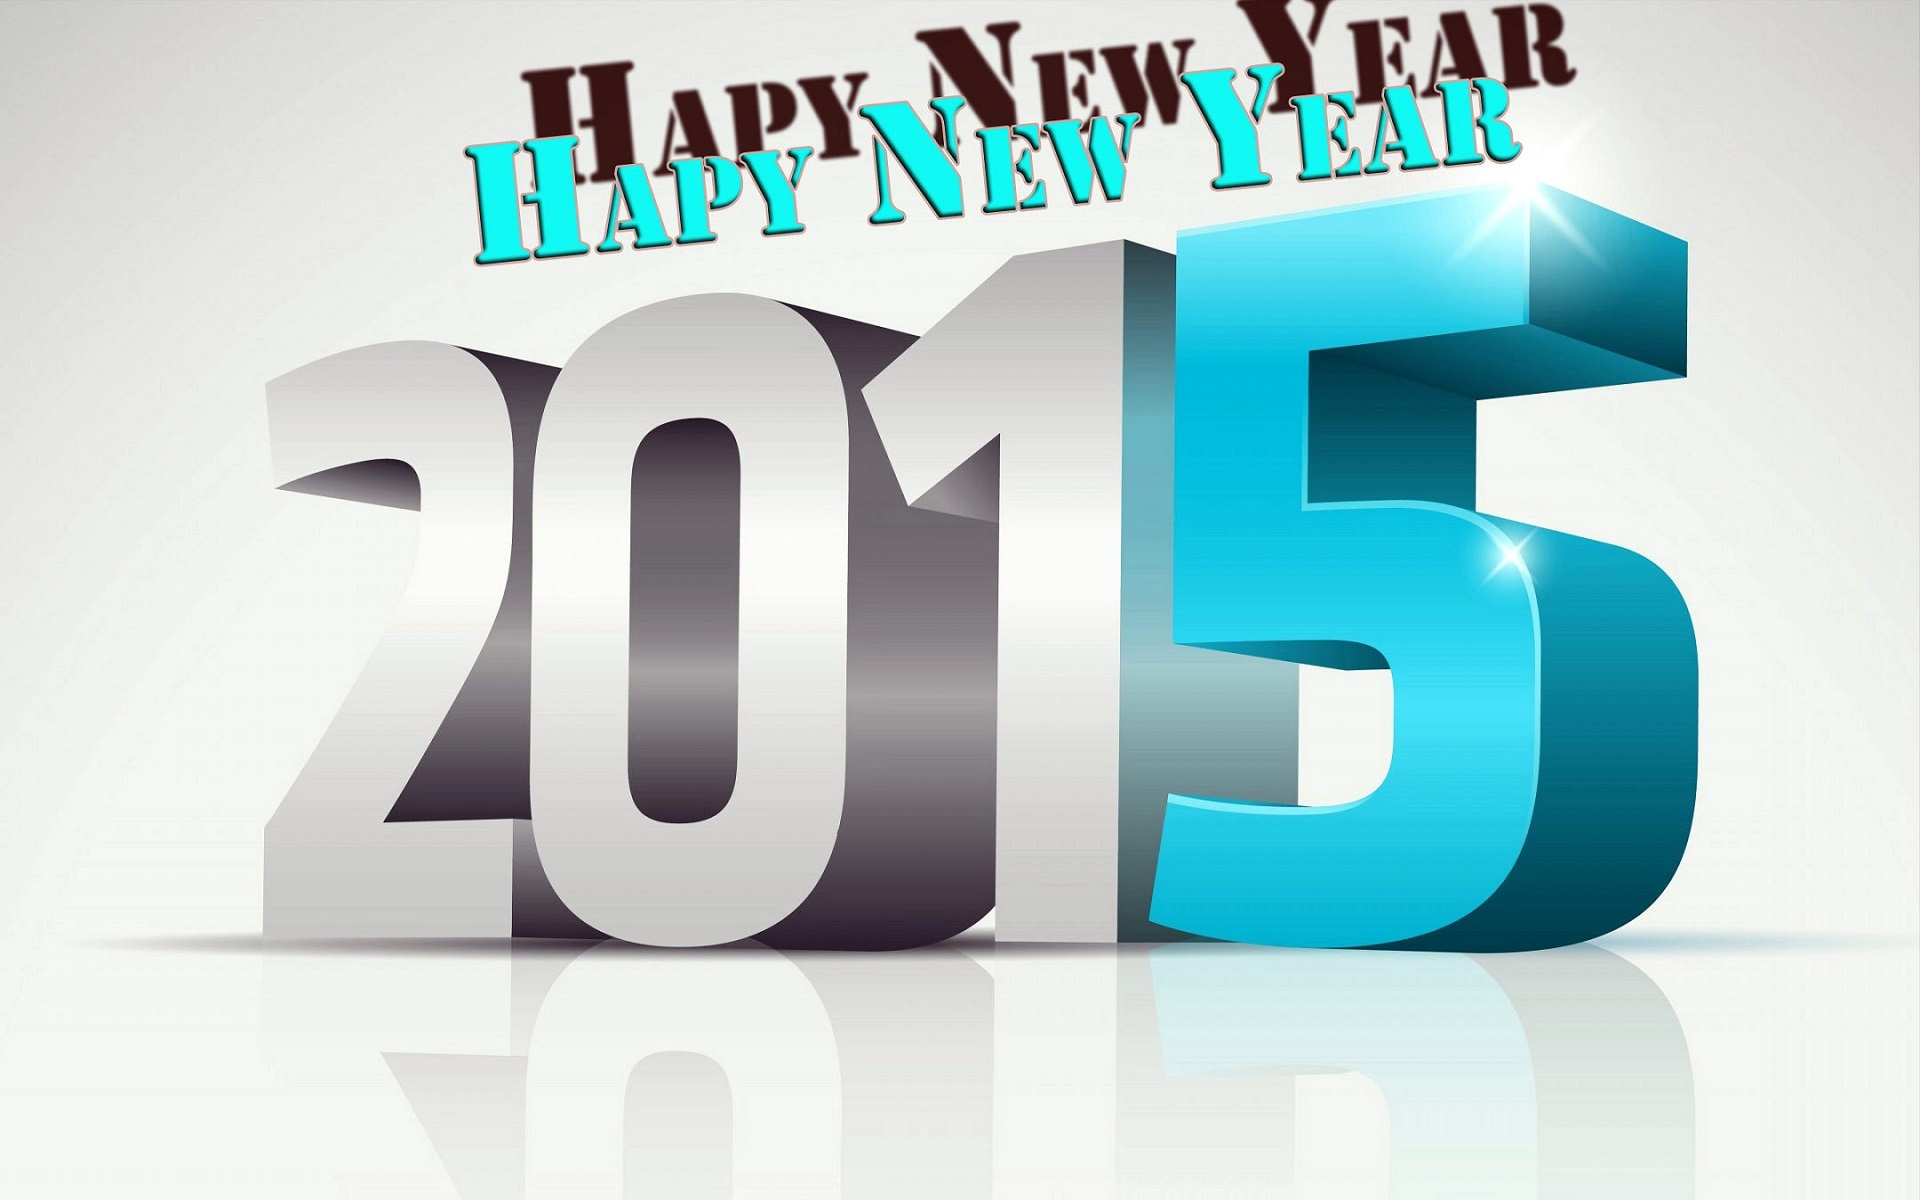 New Year 2015 Hd Wallpaper - Happy New Year 2017 3d Text Png , HD Wallpaper & Backgrounds